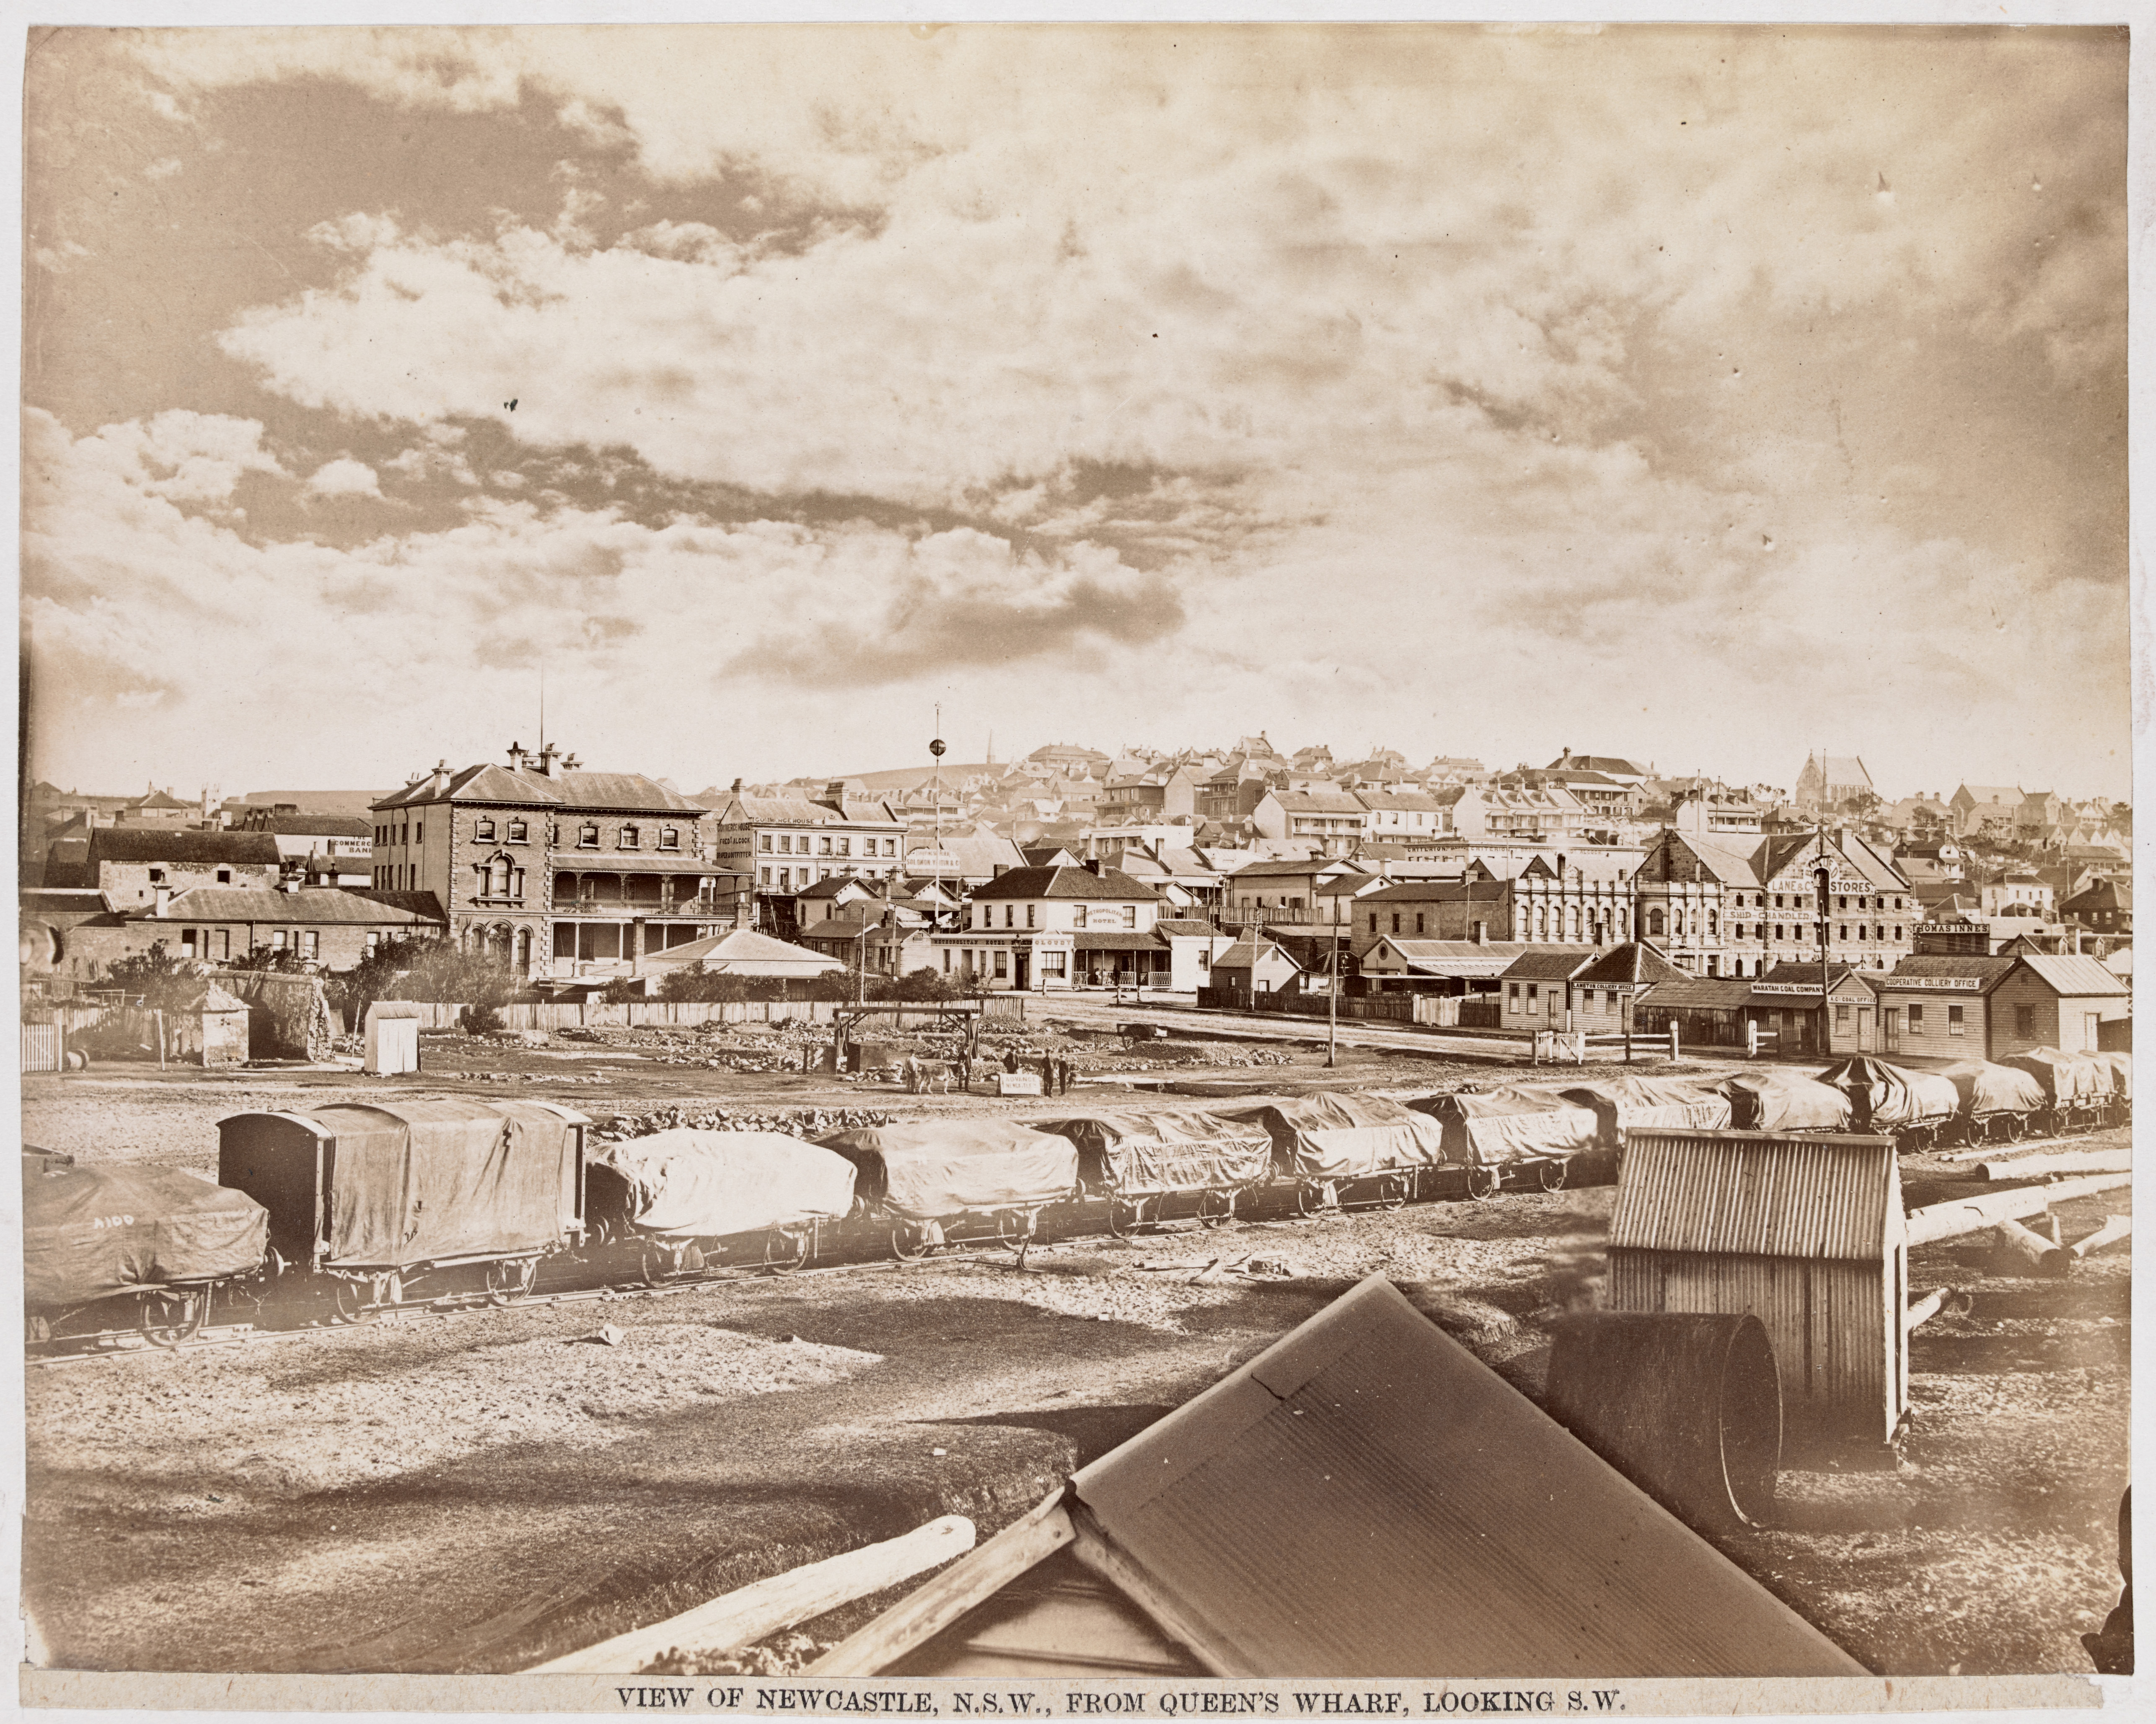 View of Newcastle from Queens Wharf Looking S.W. (H141643a - Courtesy of the State Library of Victoria)